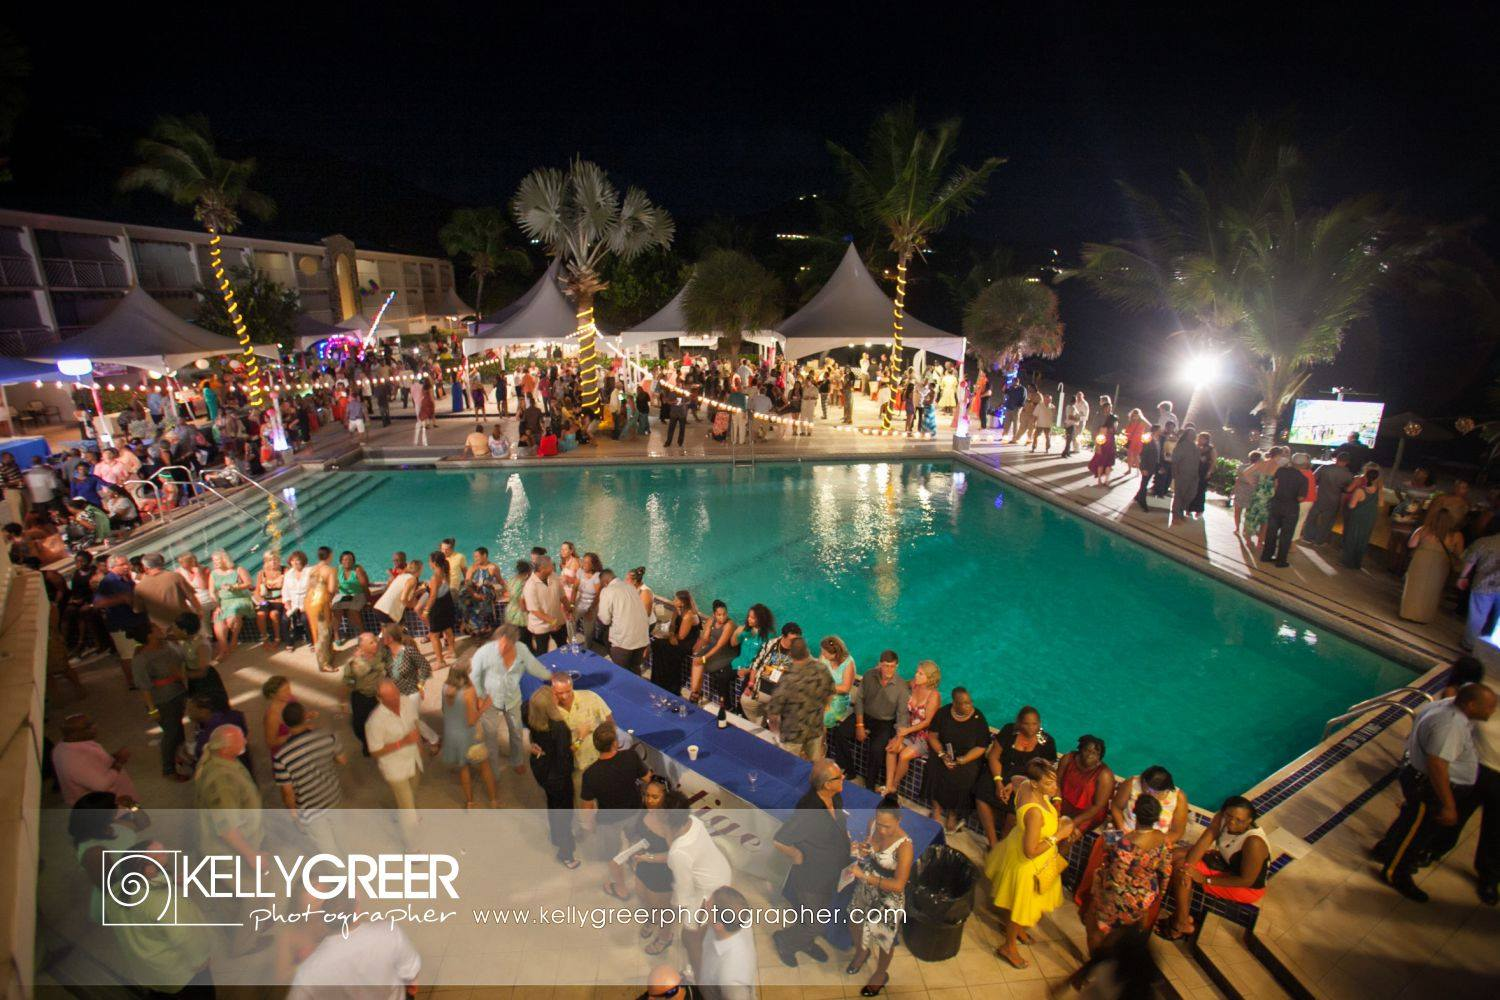 Hotels Offer Irresistible Packages For The 2015 St Croix Food Amp Wine Experience St Croix Food